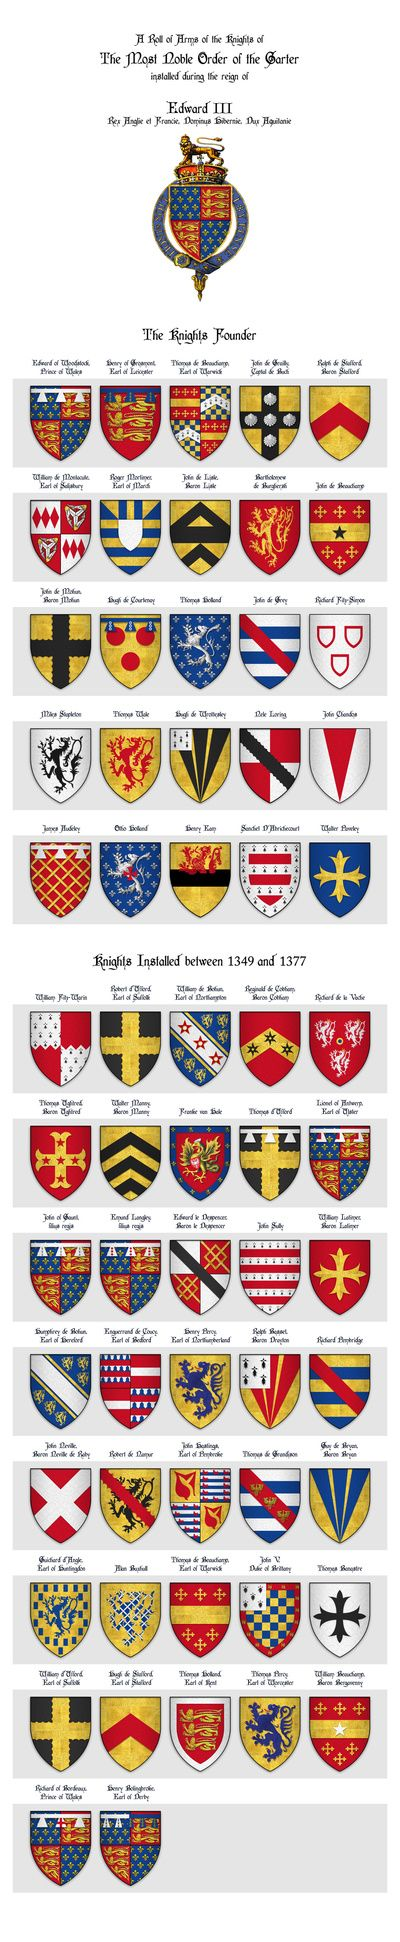 Roll of Arms - Knights of the Garter Installed during the Reign of King Edward III Art Print